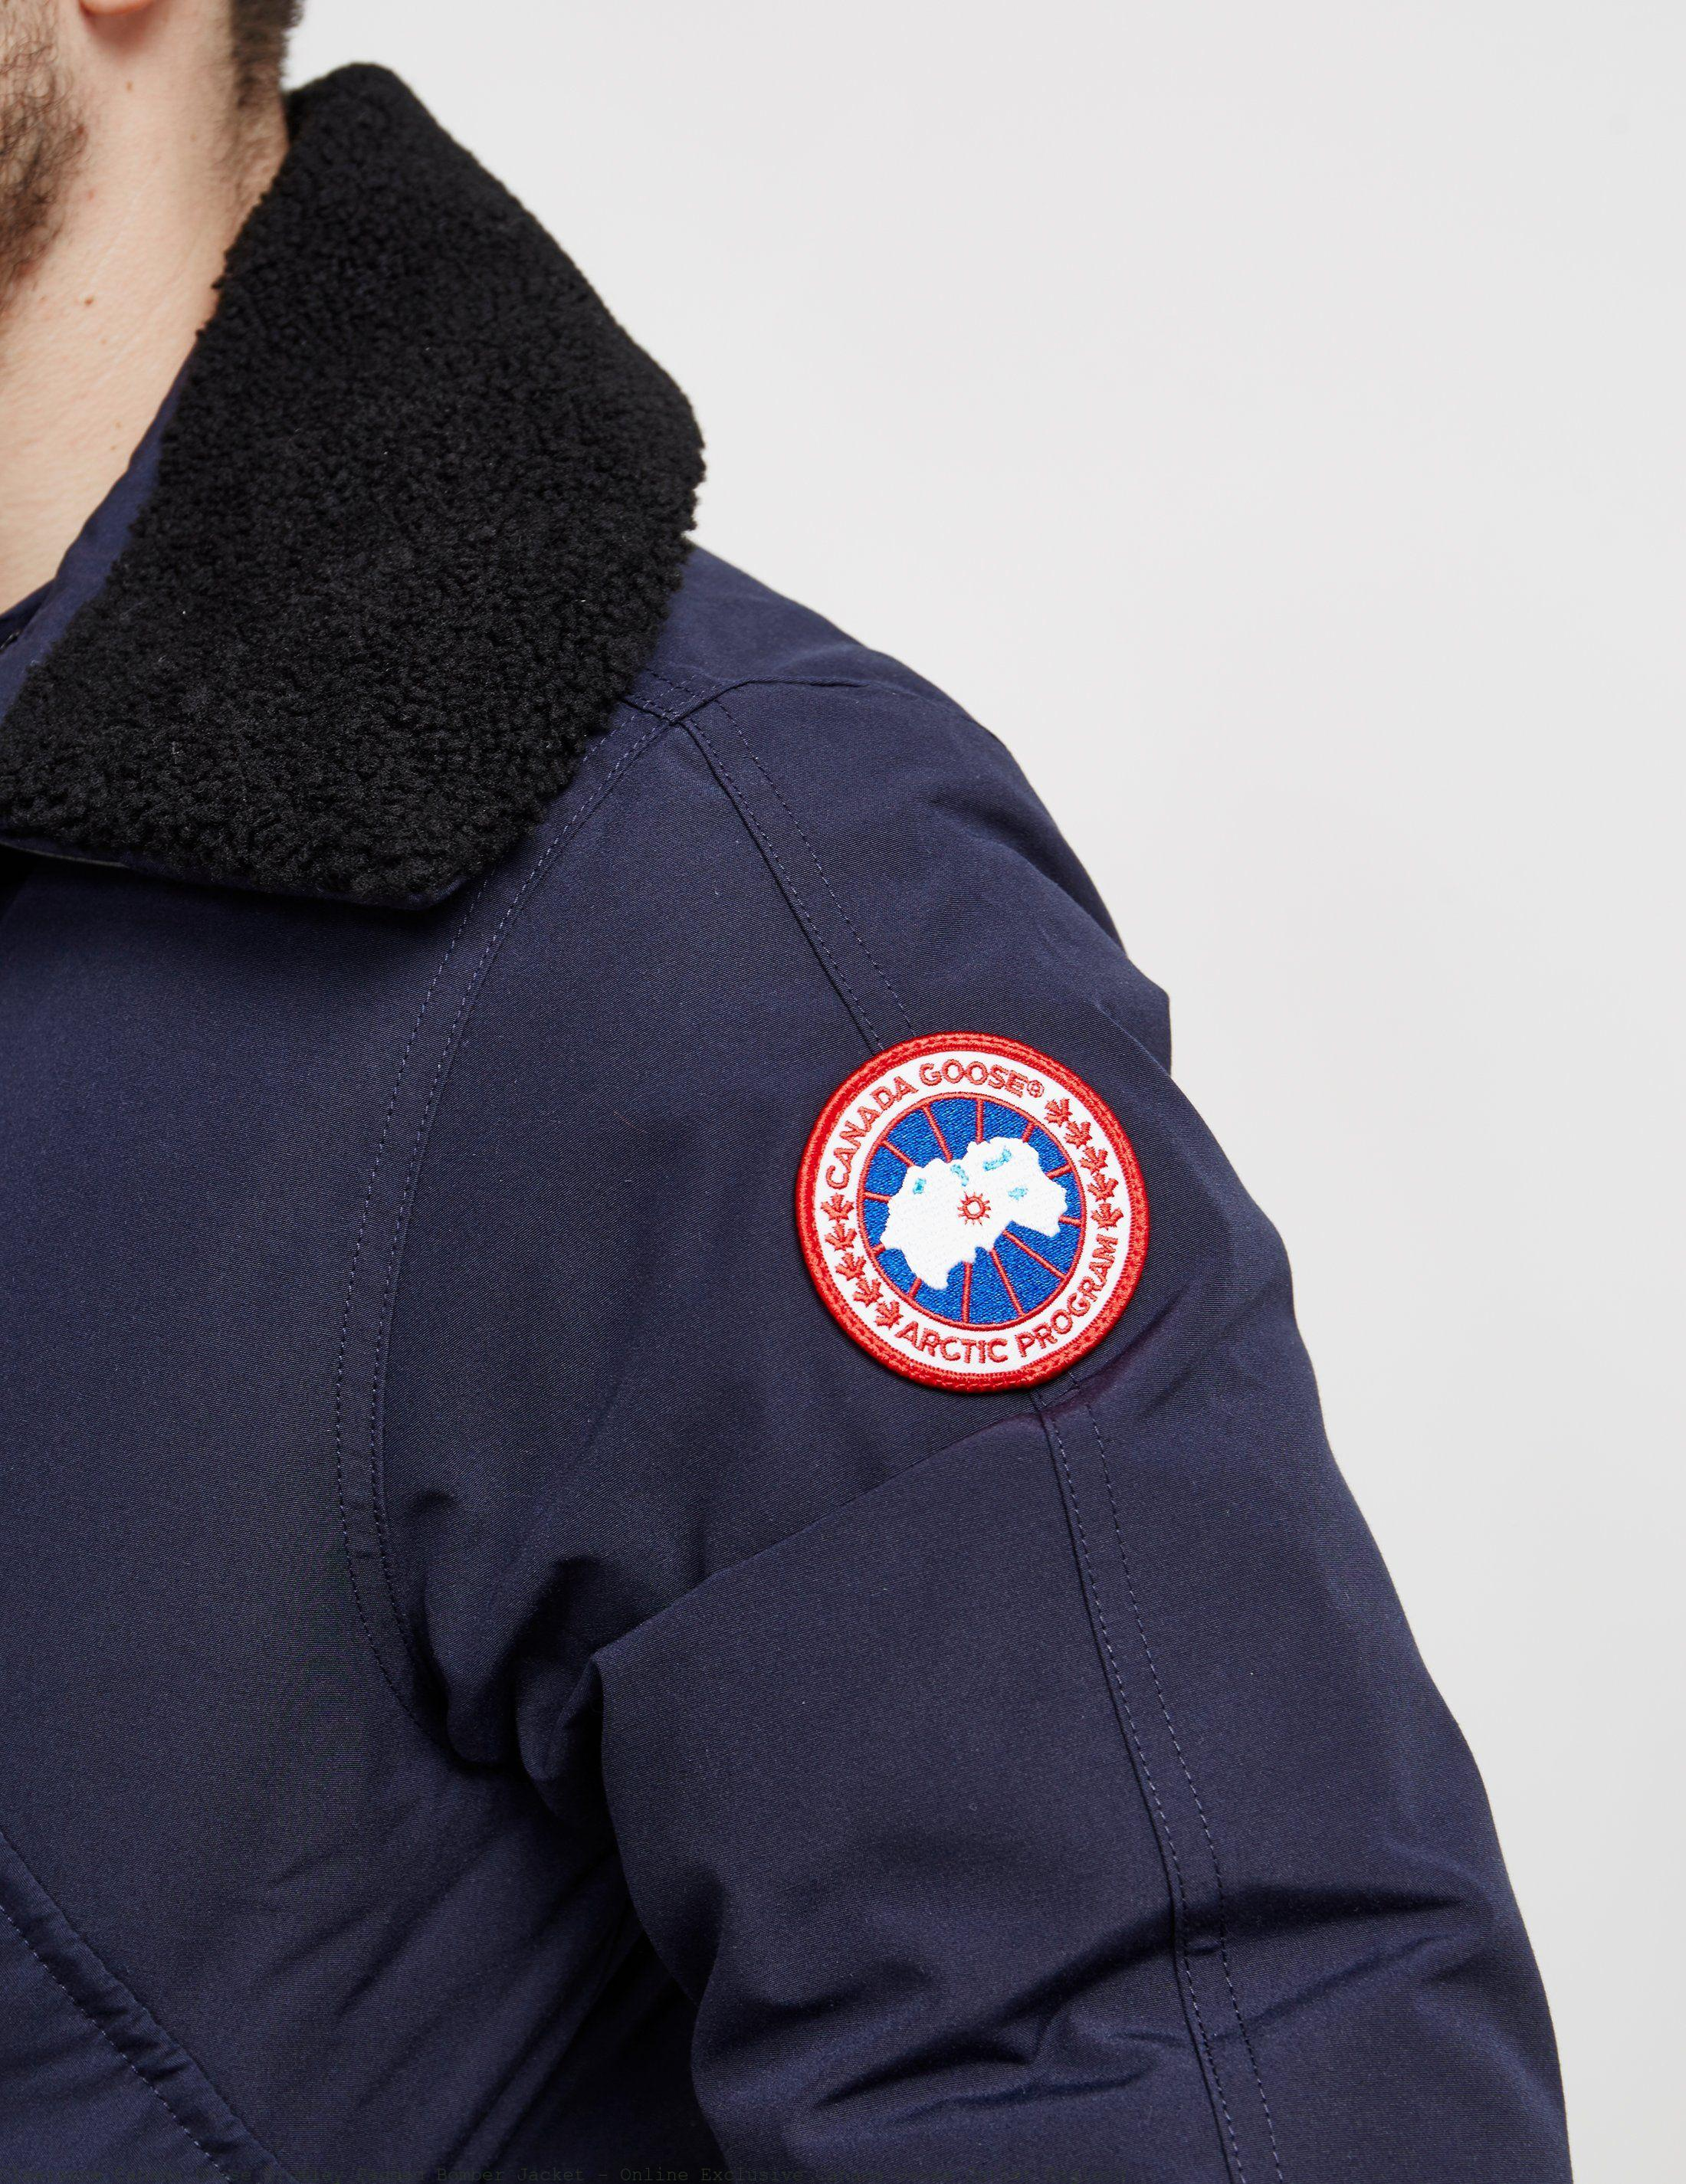 20c961db544 Clearance Canada Goose Bromley Padded Bomber Jacket - Online Exclusive  Canada Goose Outlet England